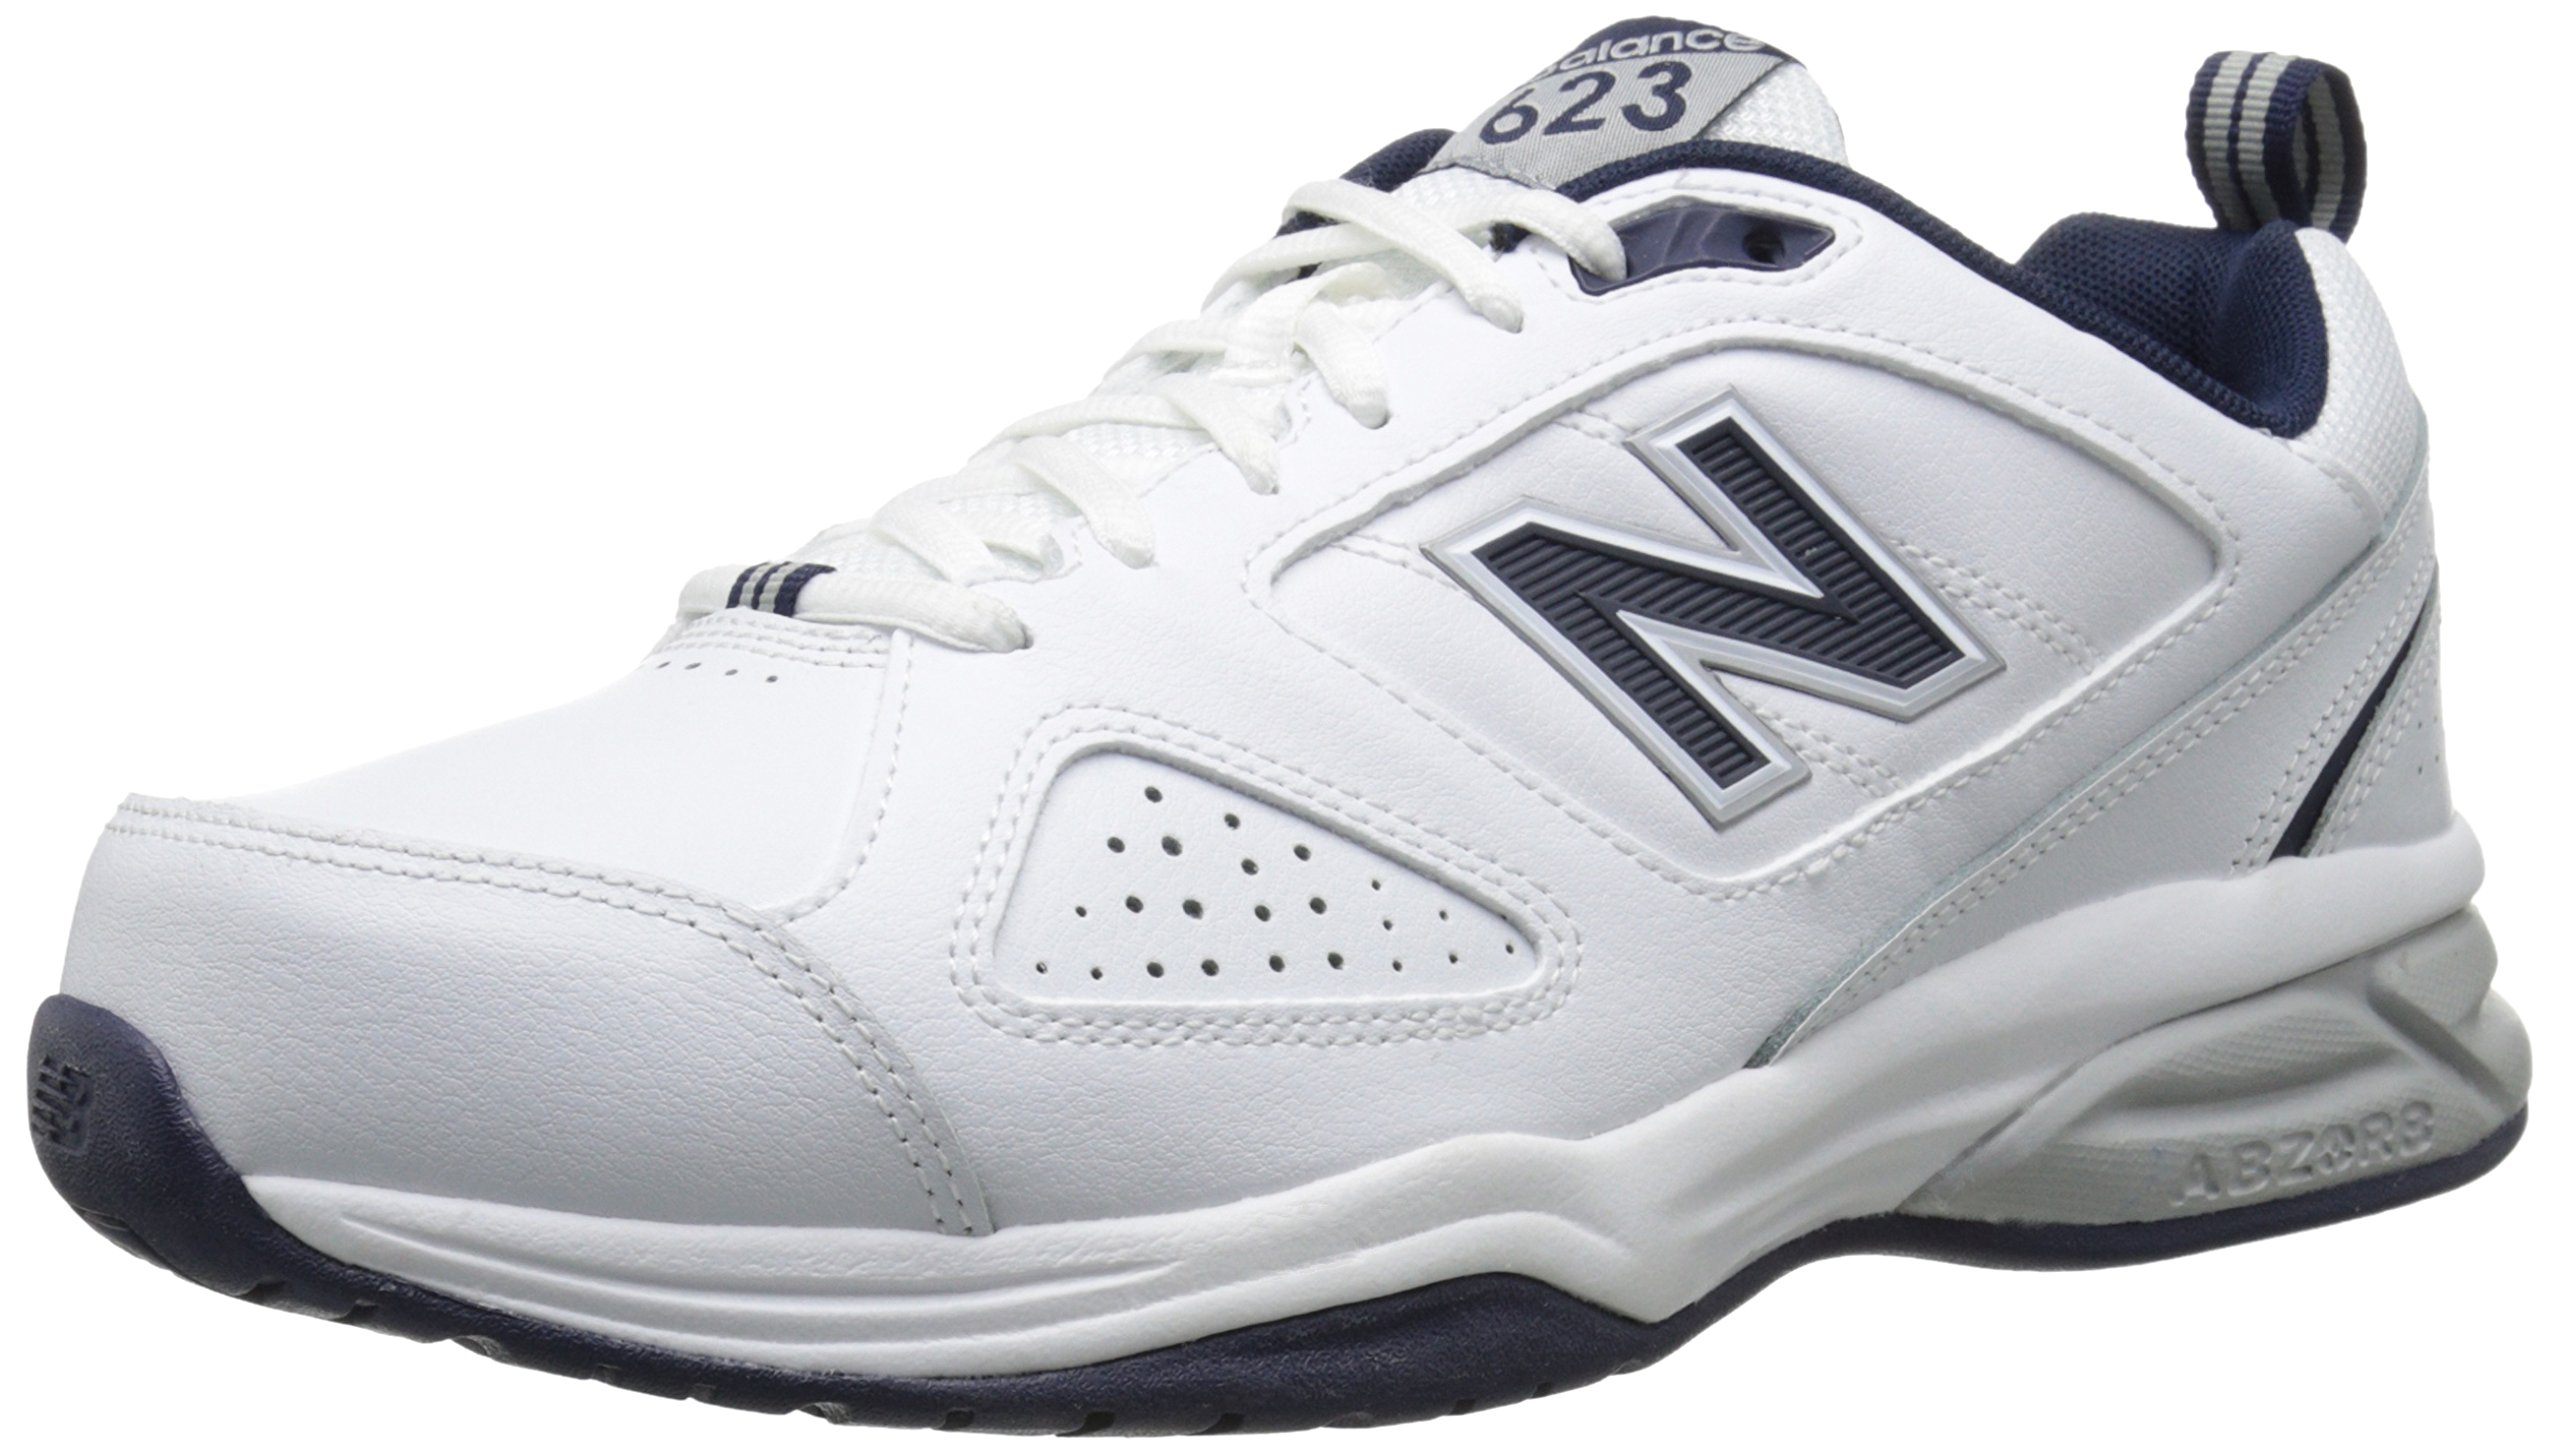 New Balance Men's MX623v3 Casual Comfort Training Shoe,  White/Navy, 8 M US